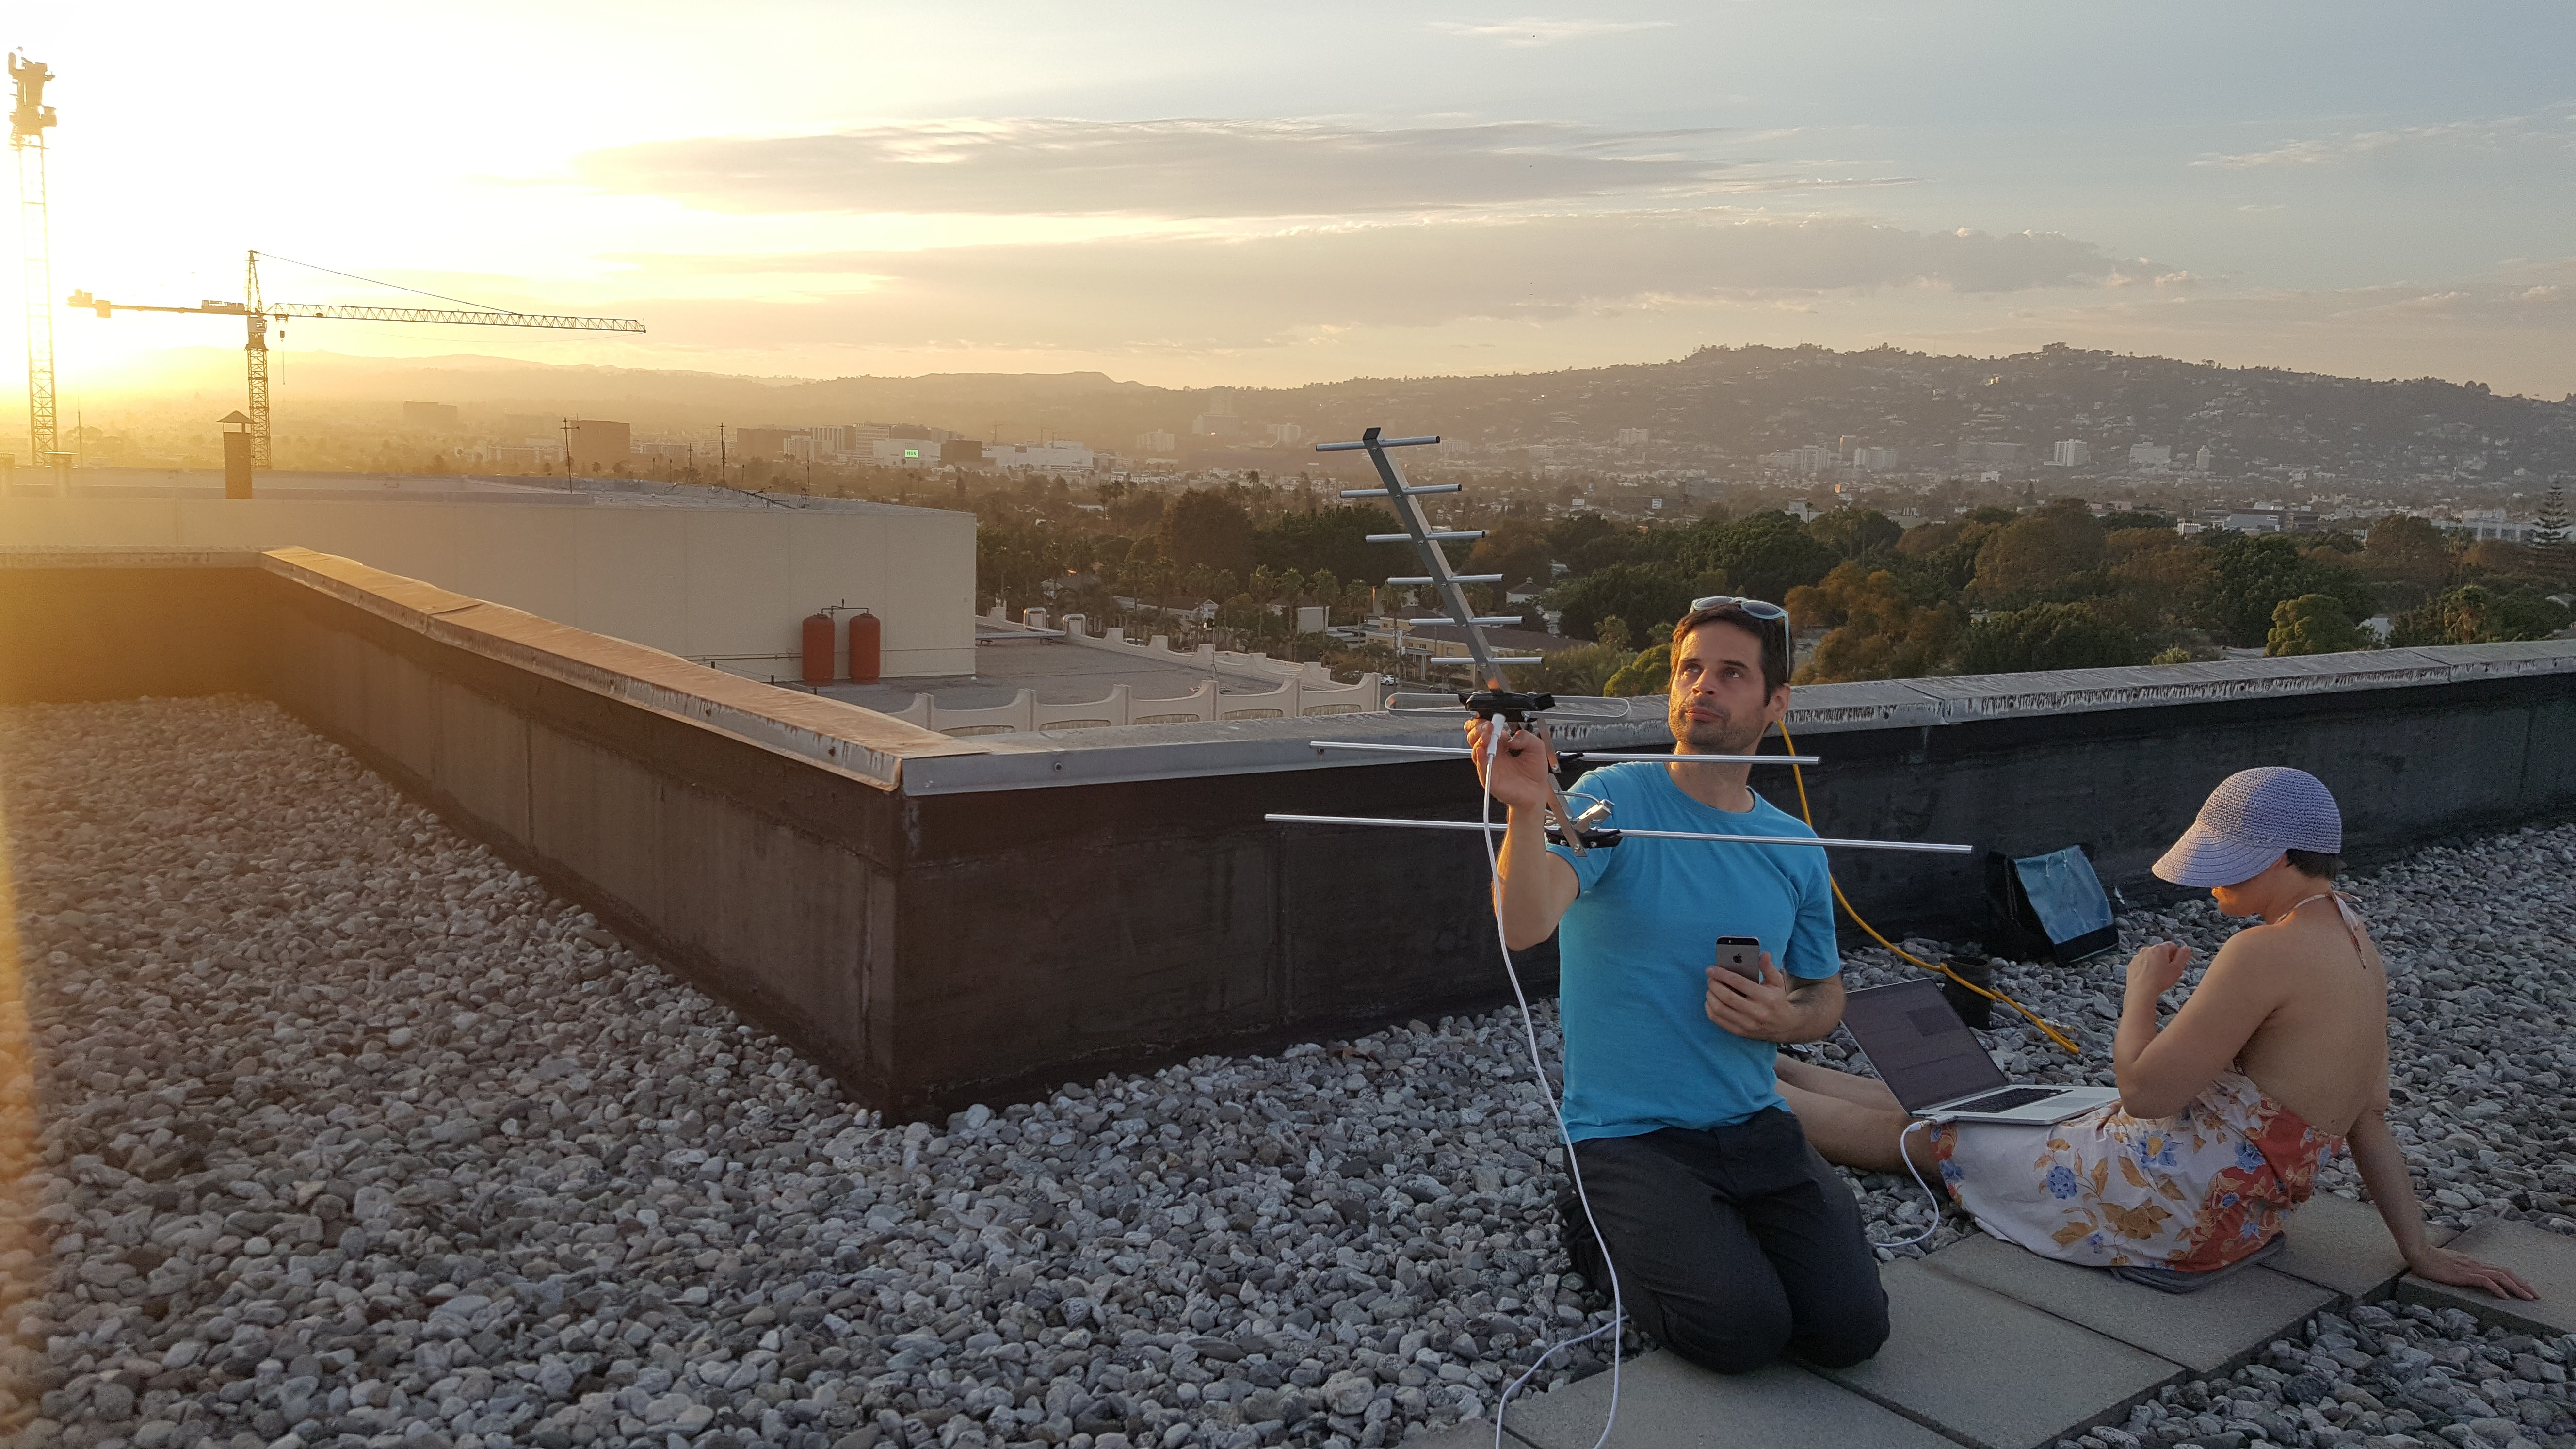 Tracking satellite signals on the roof at LACMA, August 2017. © Kovács/O'Doherty